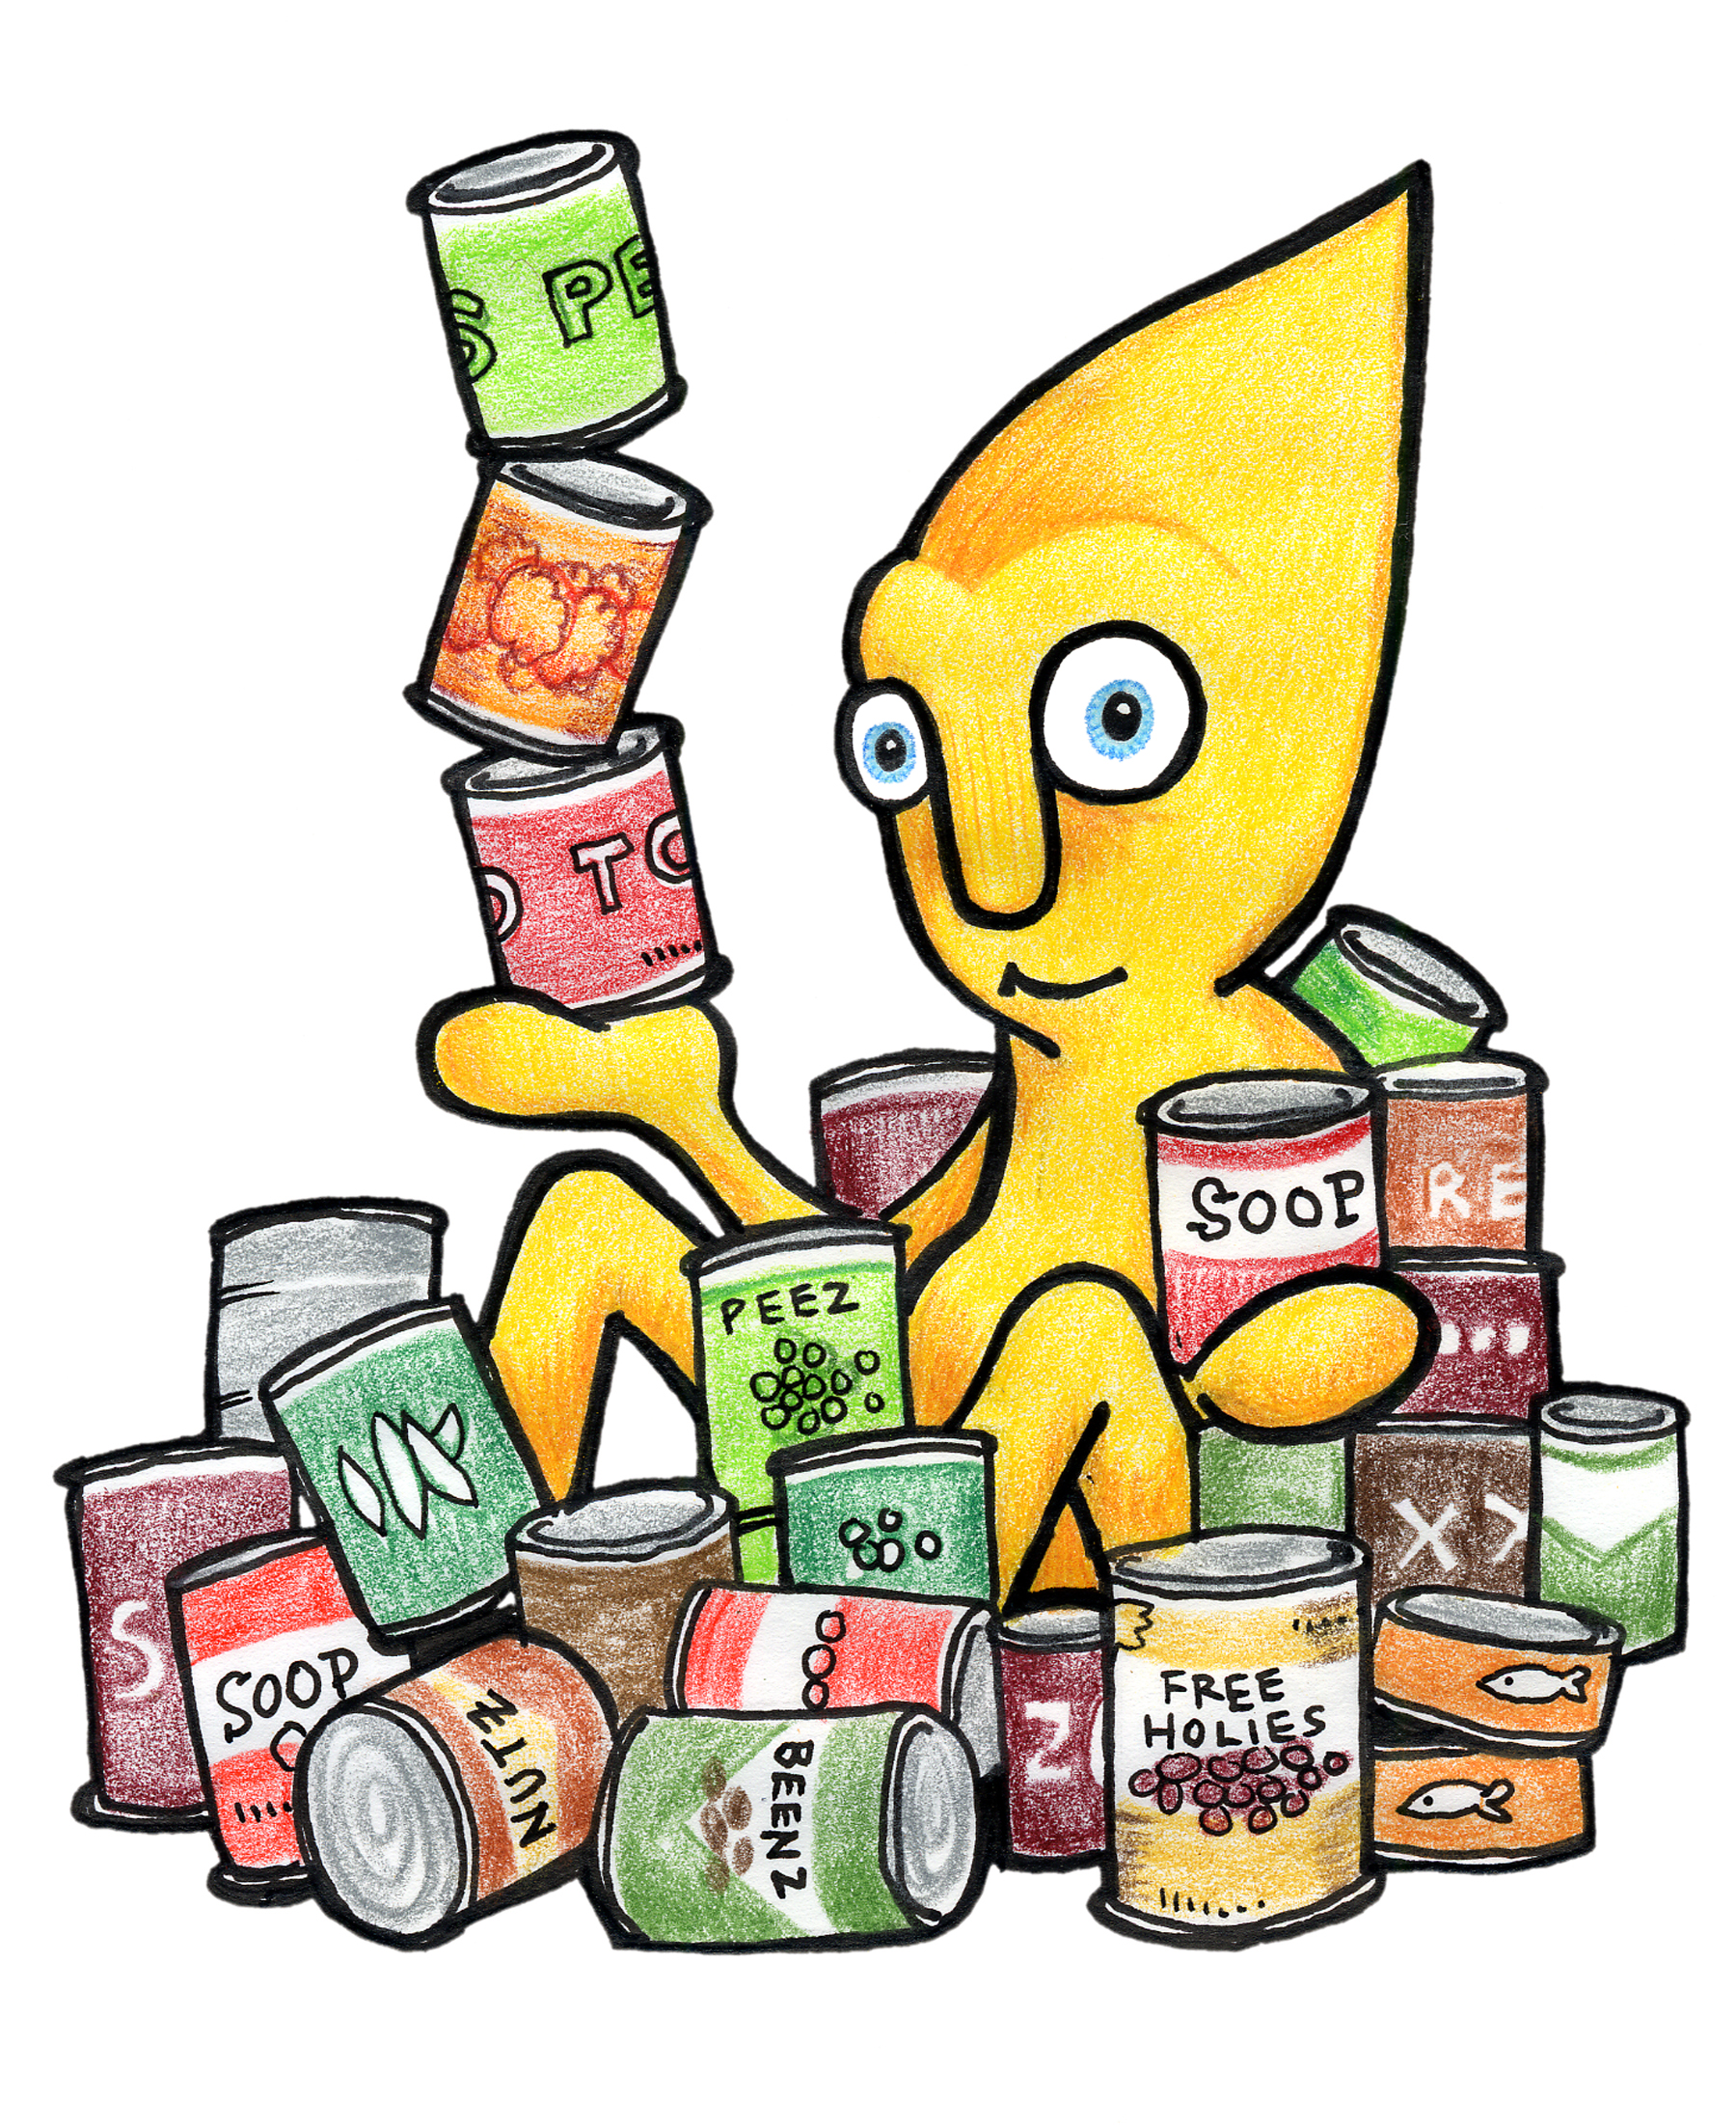 Canned food food drive clip art 2-Canned food food drive clip art 2-17